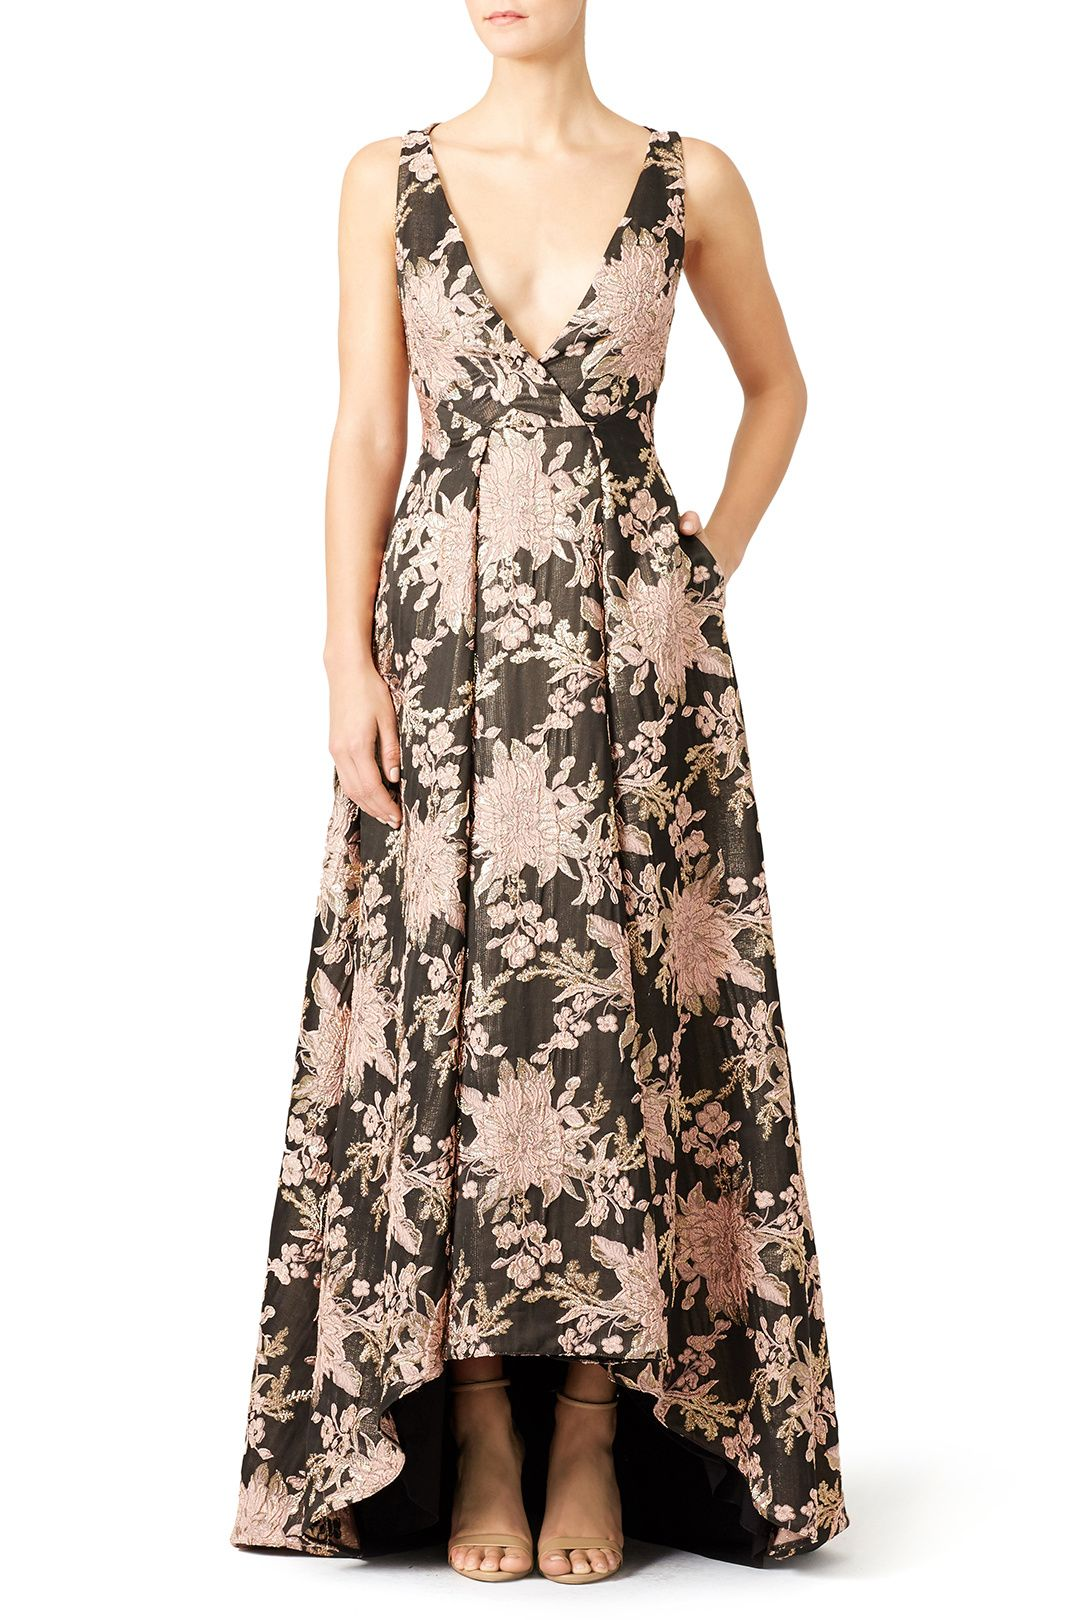 Fl Erfly Gown By Badgley Mischka For 95 105 Only At The Runway